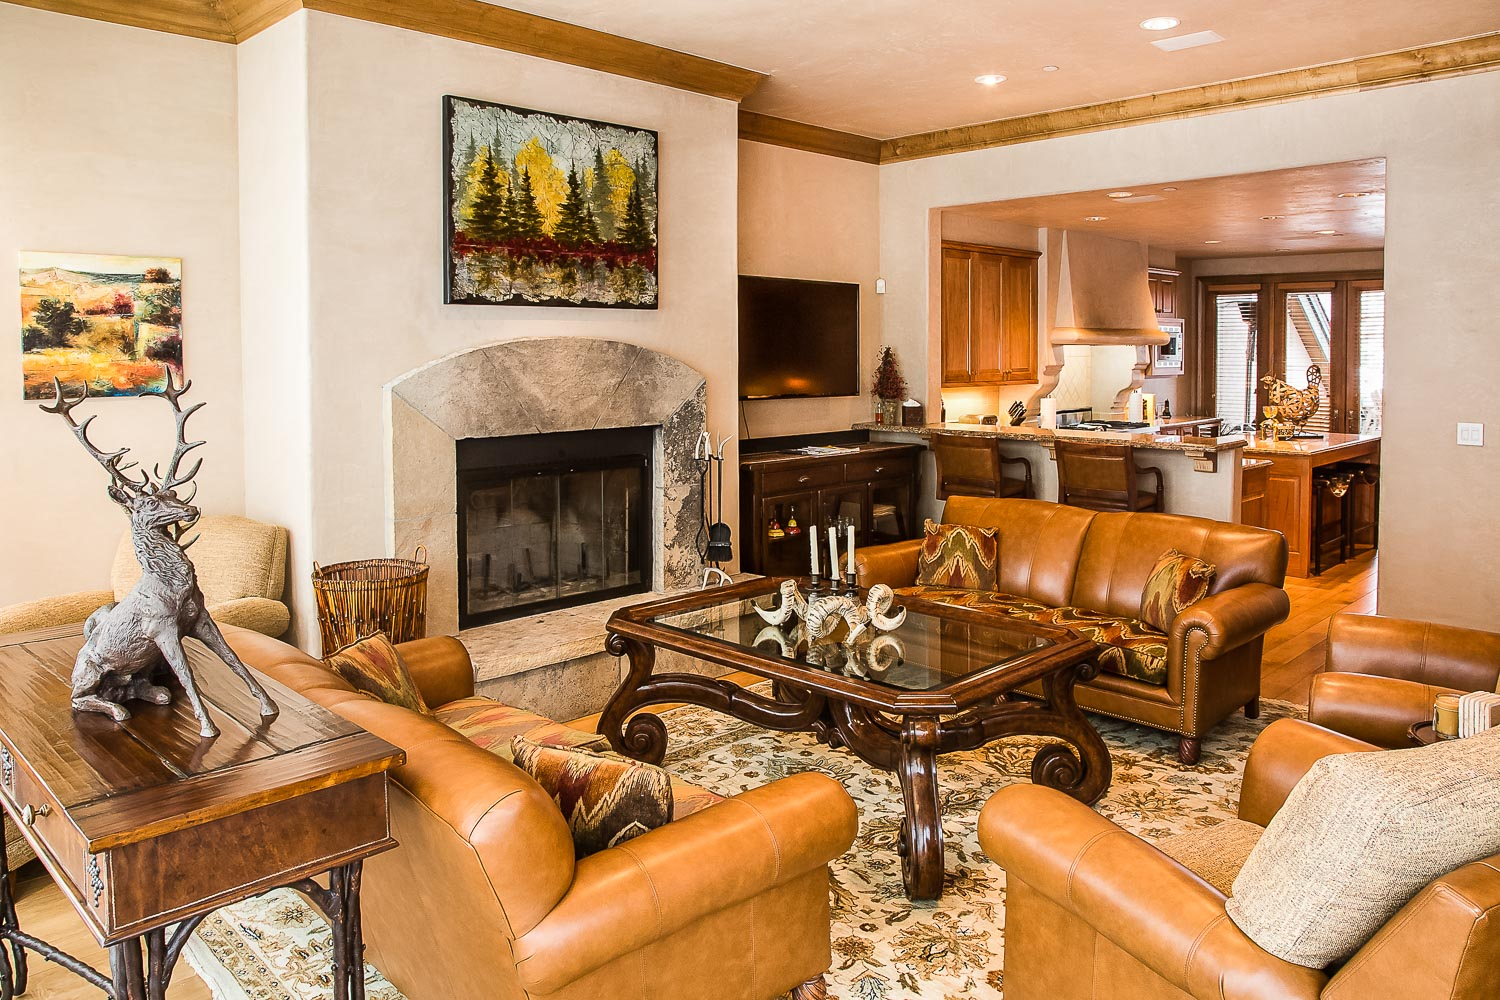 Owl Creek Town Homes Snowmass Colorado - 1 303.420.9963 reservations